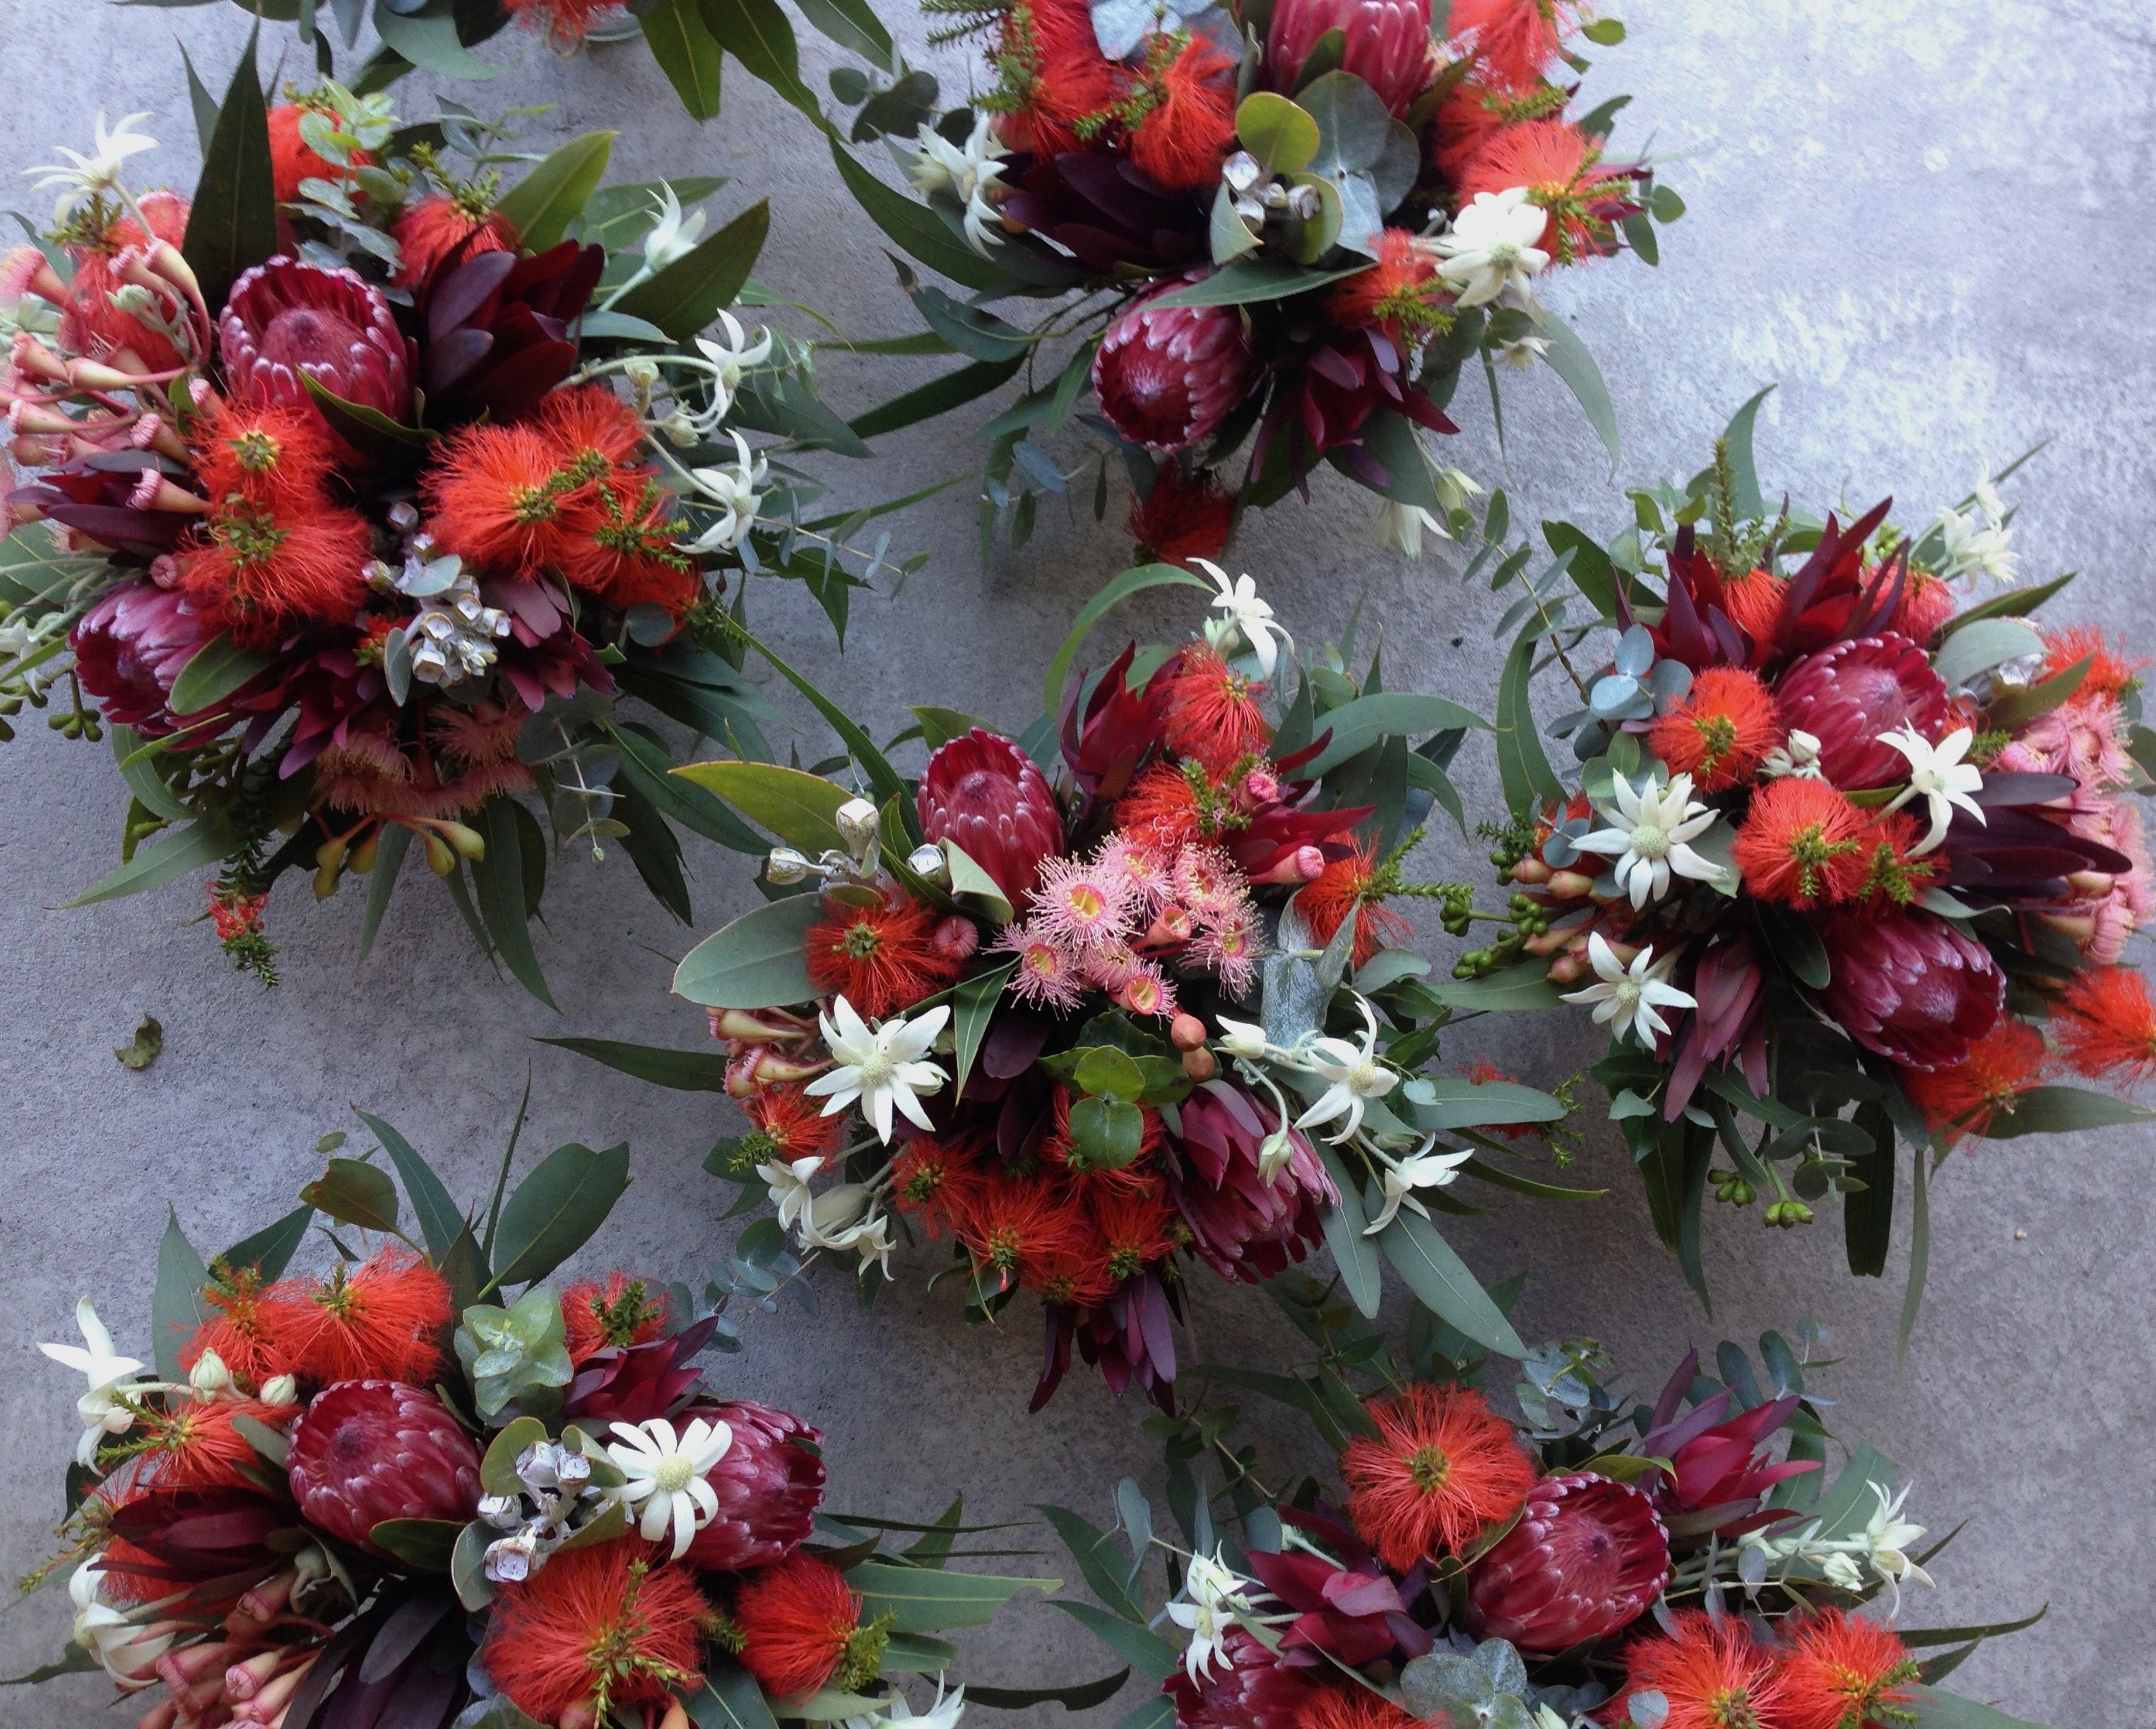 Australian Native Flowers Table arrangements with